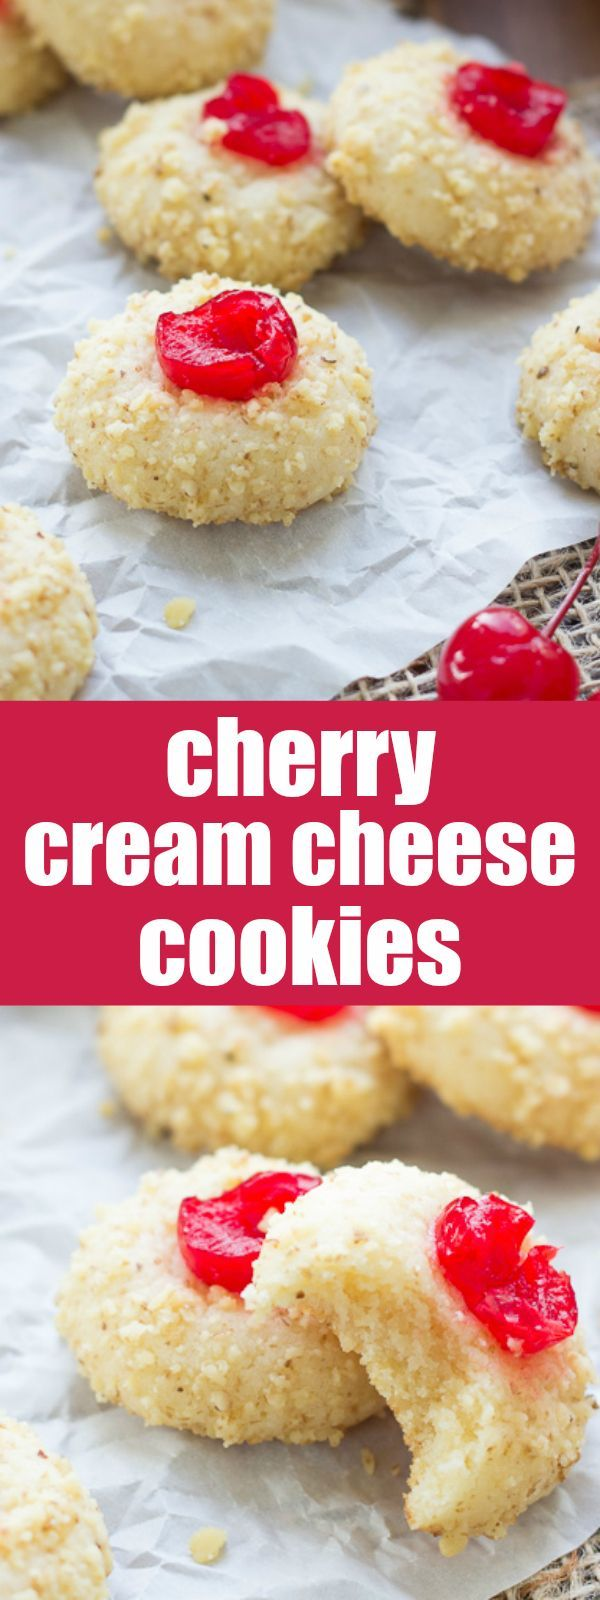 17 Best ideas about Cheese Cookies on Pinterest | Cream ...